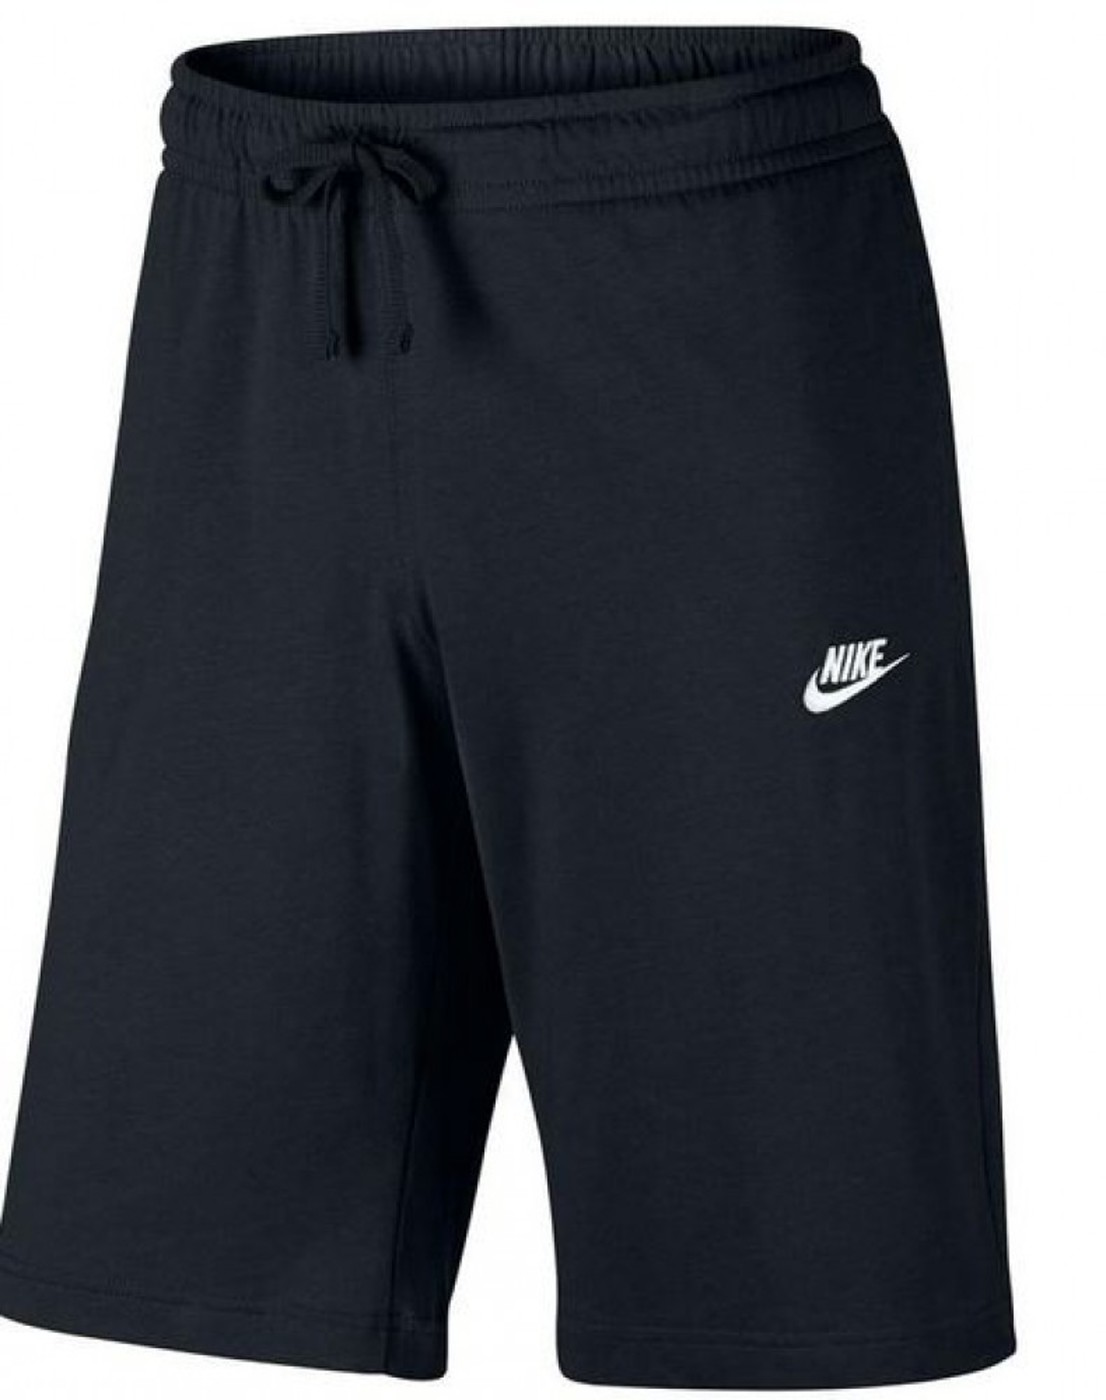 NIKE M NSW SHORT JSY CLUB - Herren